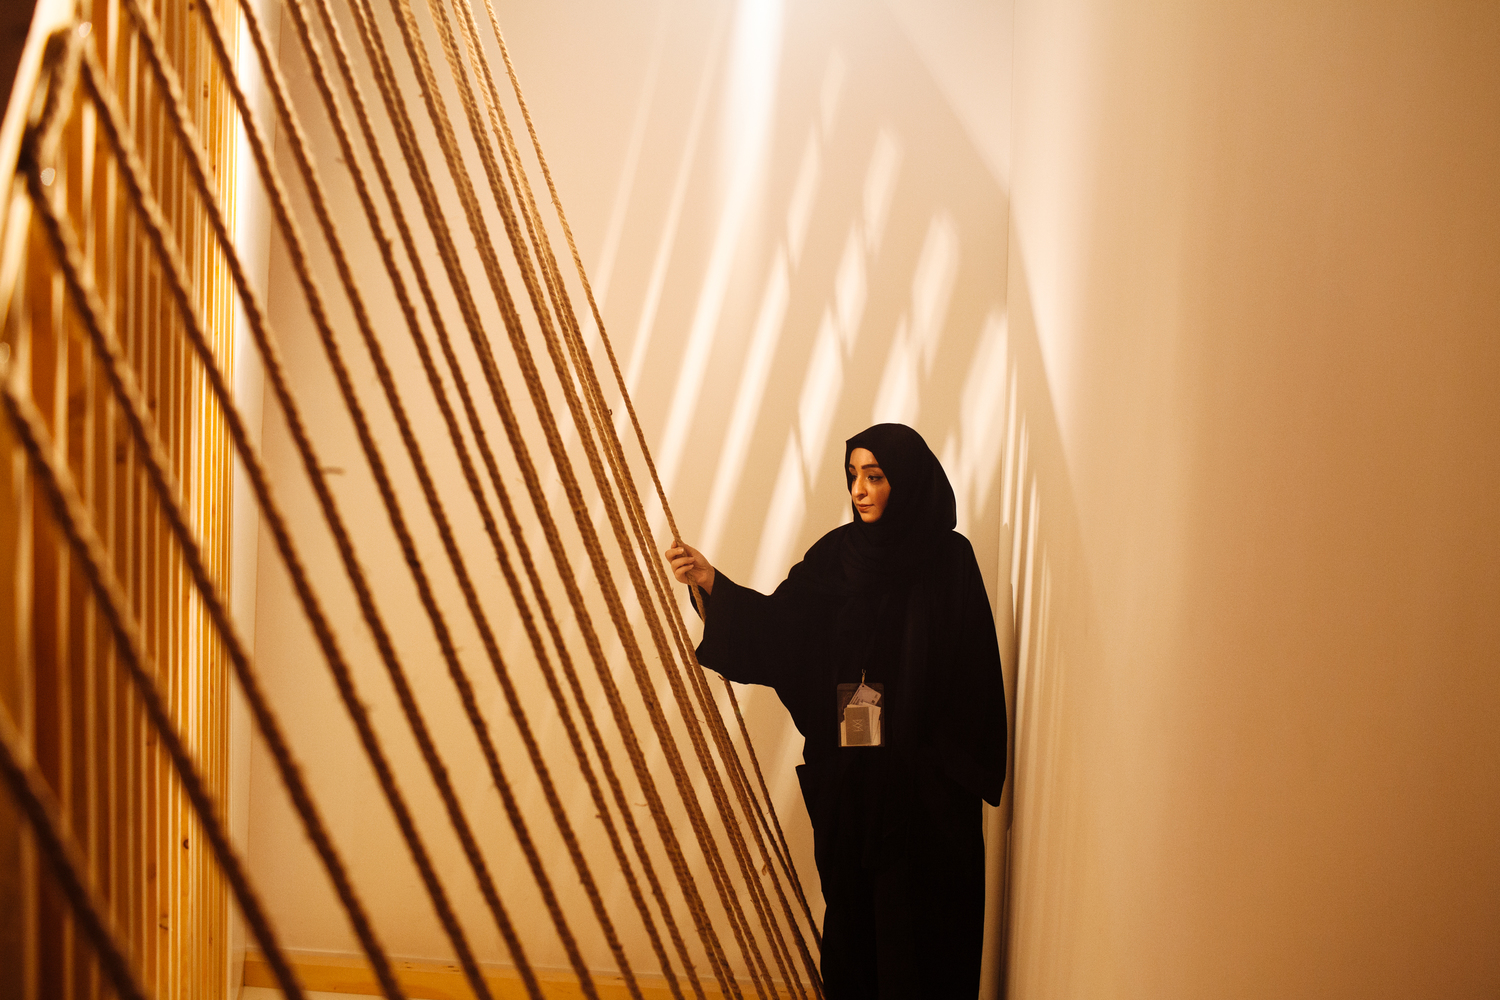 Photographer_Anna_Nielsen_Dubai_UAE_DocumentaryPhotography_people_39.JPG